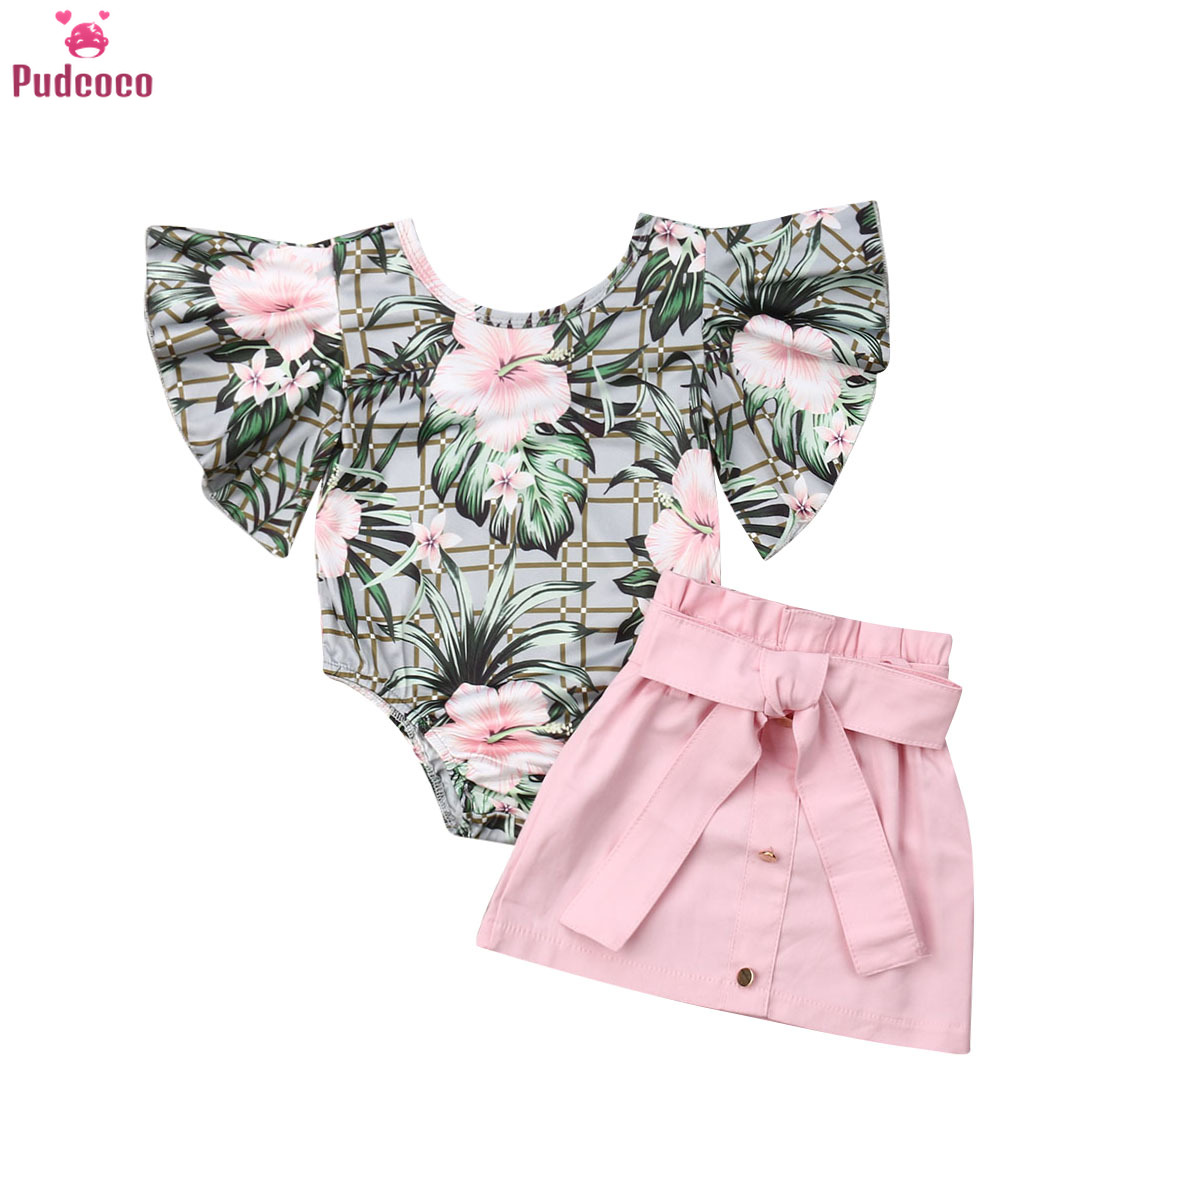 1-4 Years Infant Toddler Baby Girl Clothes Set Flower Printed Short Sleeve Romper Tops + Pink Mini Skirt Summer Clothes Outfits